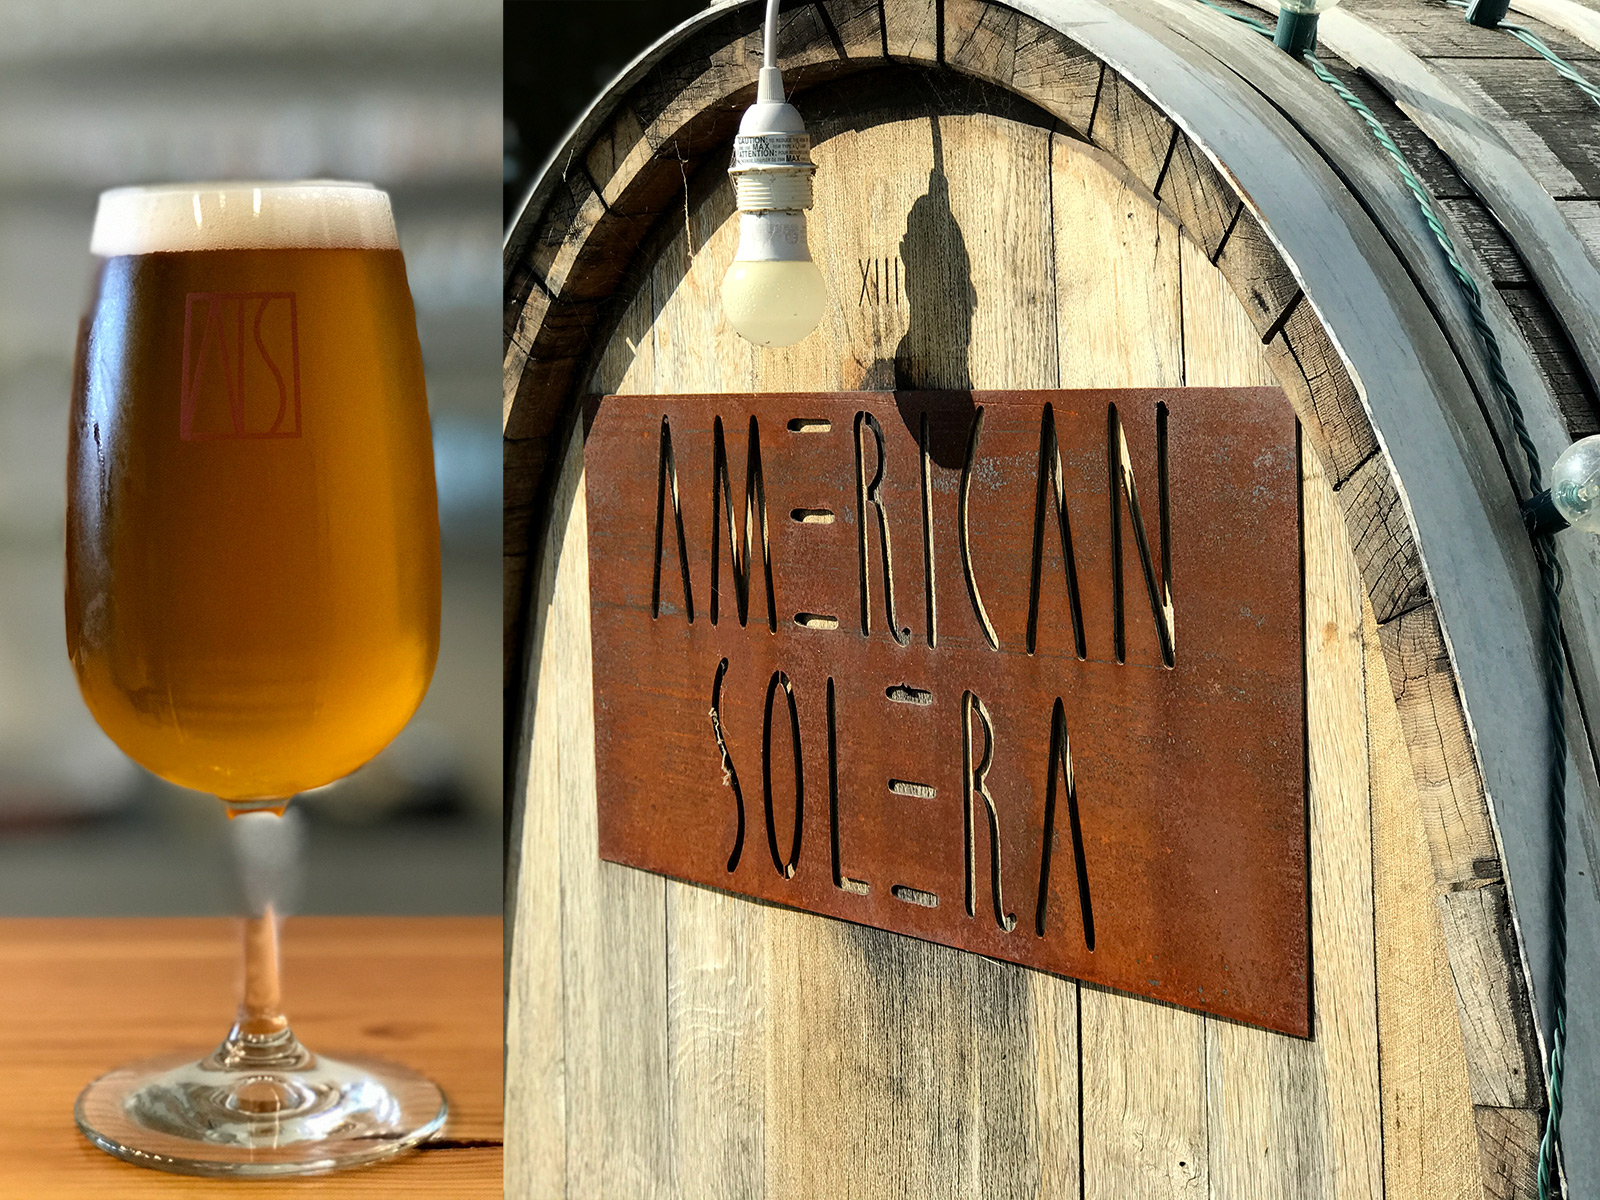 American Solera Brewing is making amazing oklahoma craft beer.